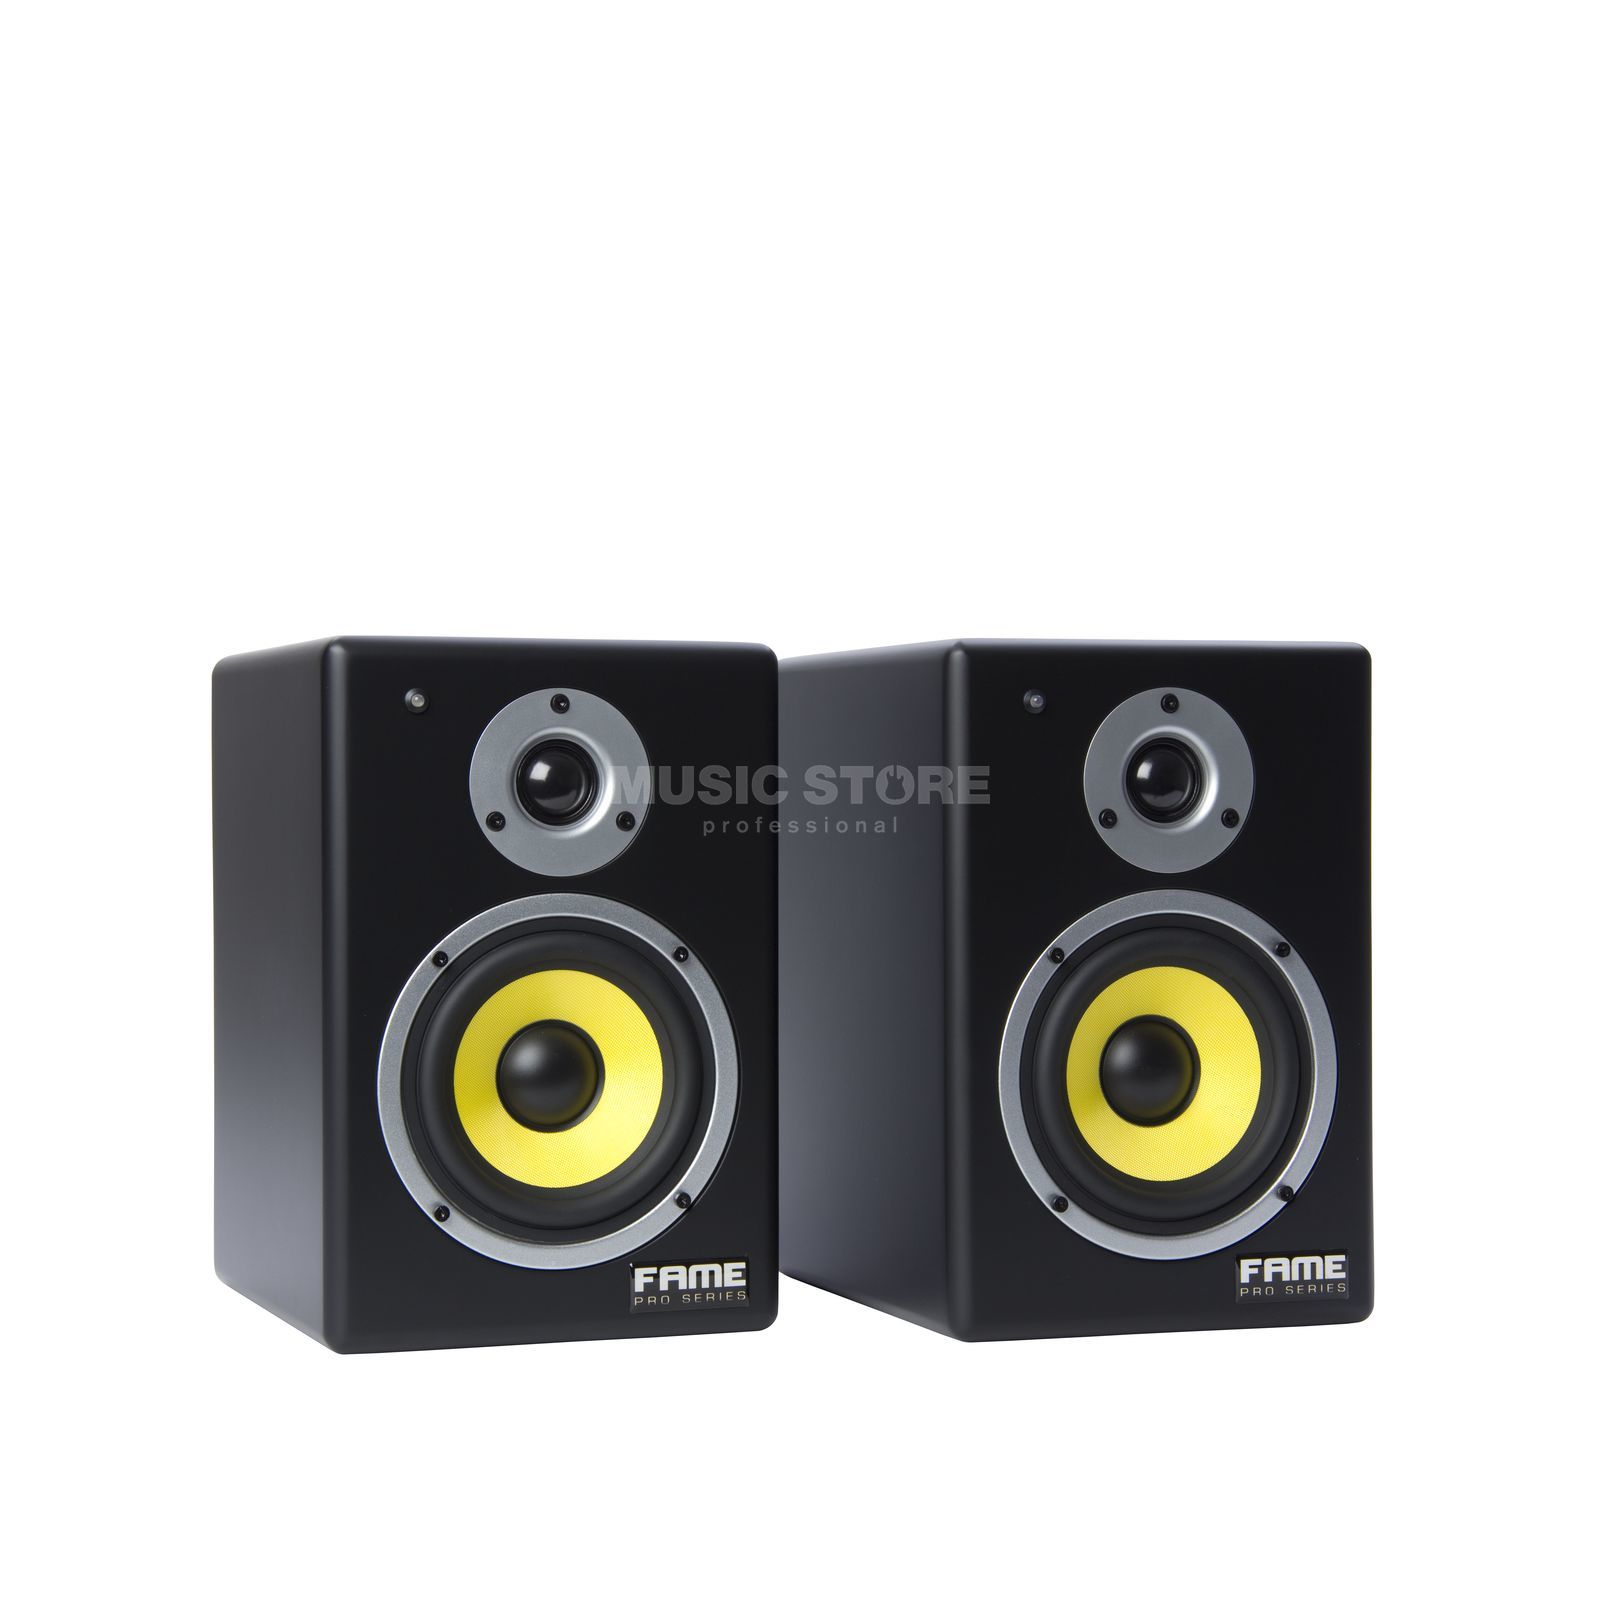 Fame Audio Pro Series RPM 5 Produktbild